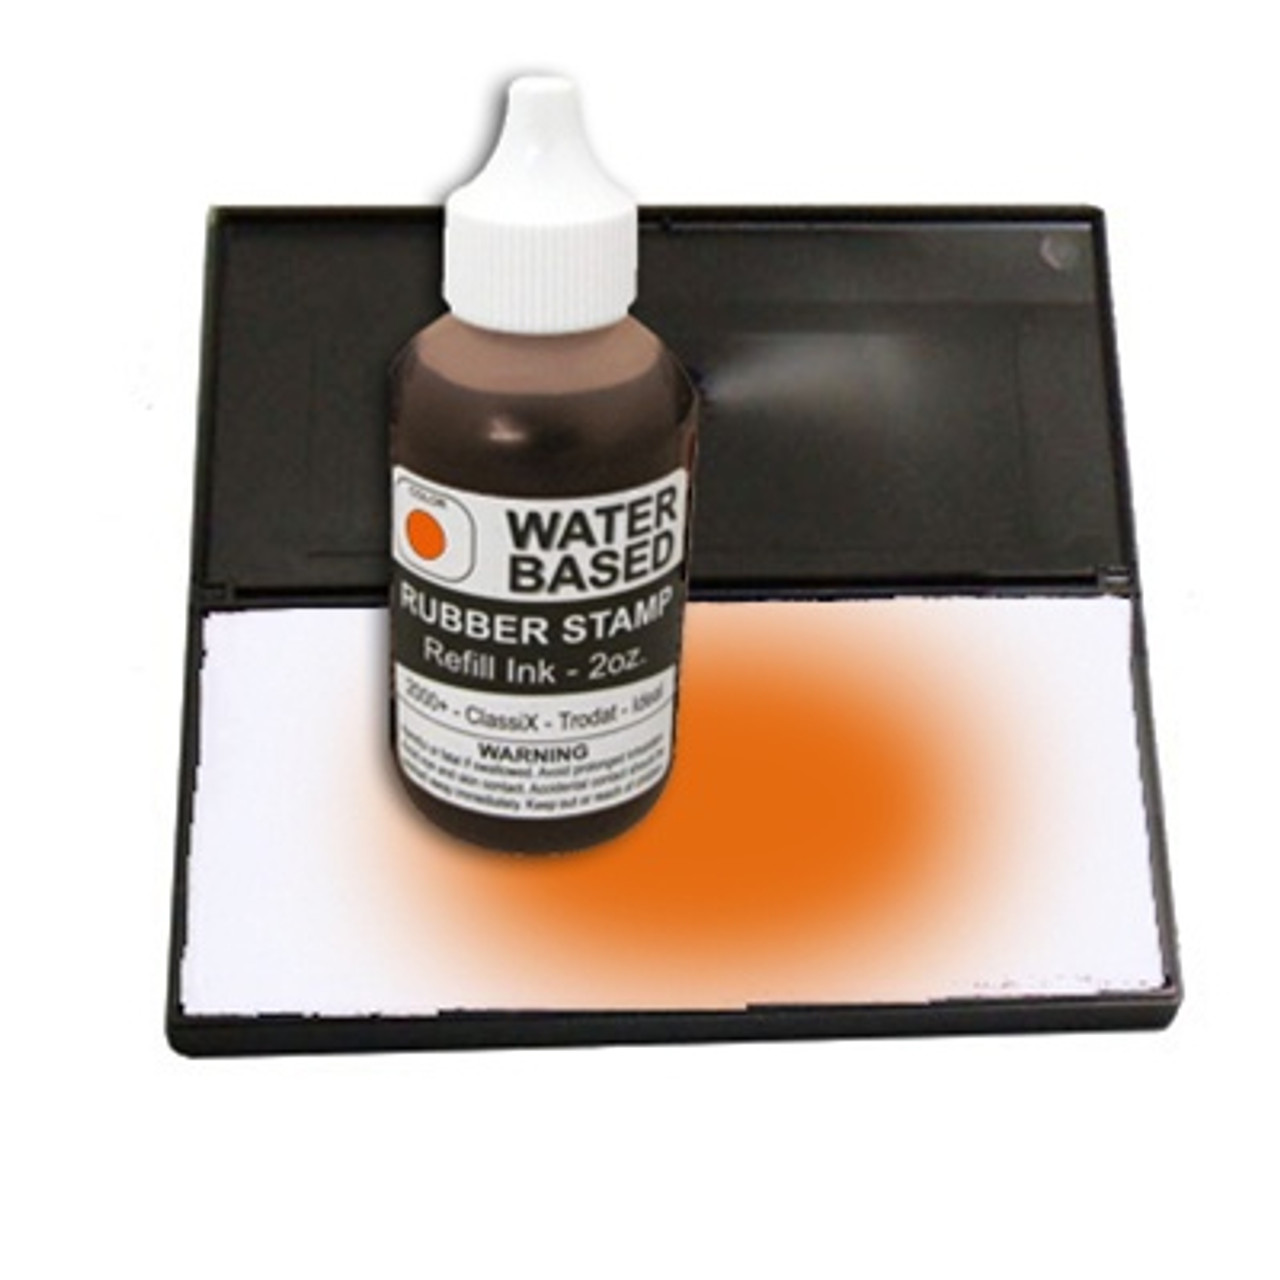 Dry stamp pad with orange ink bottle